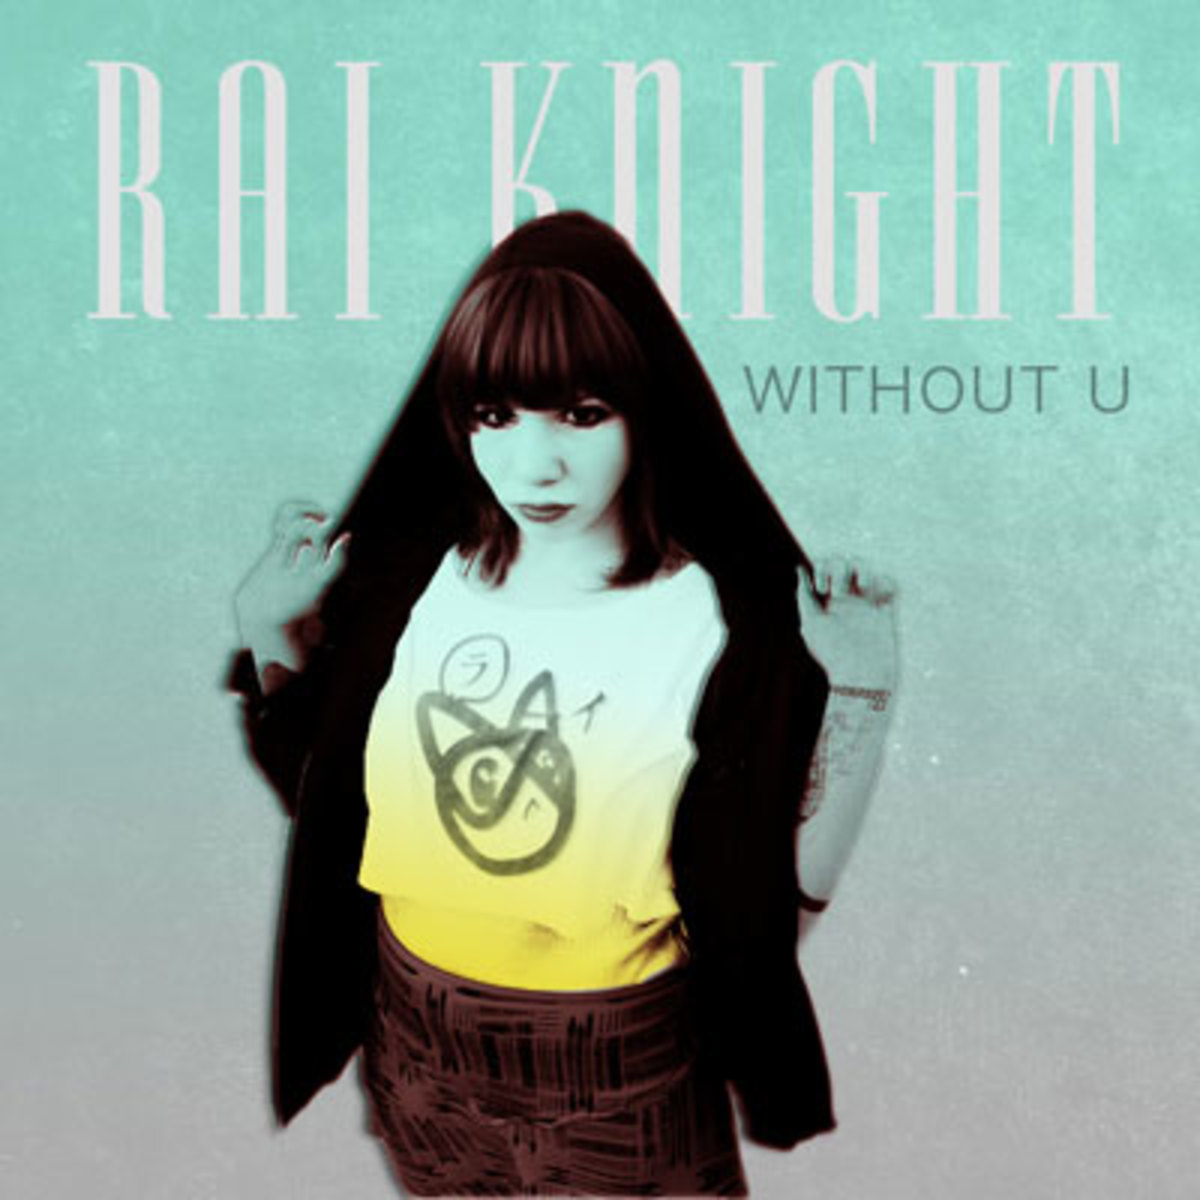 raiknight-withoutu.jpg